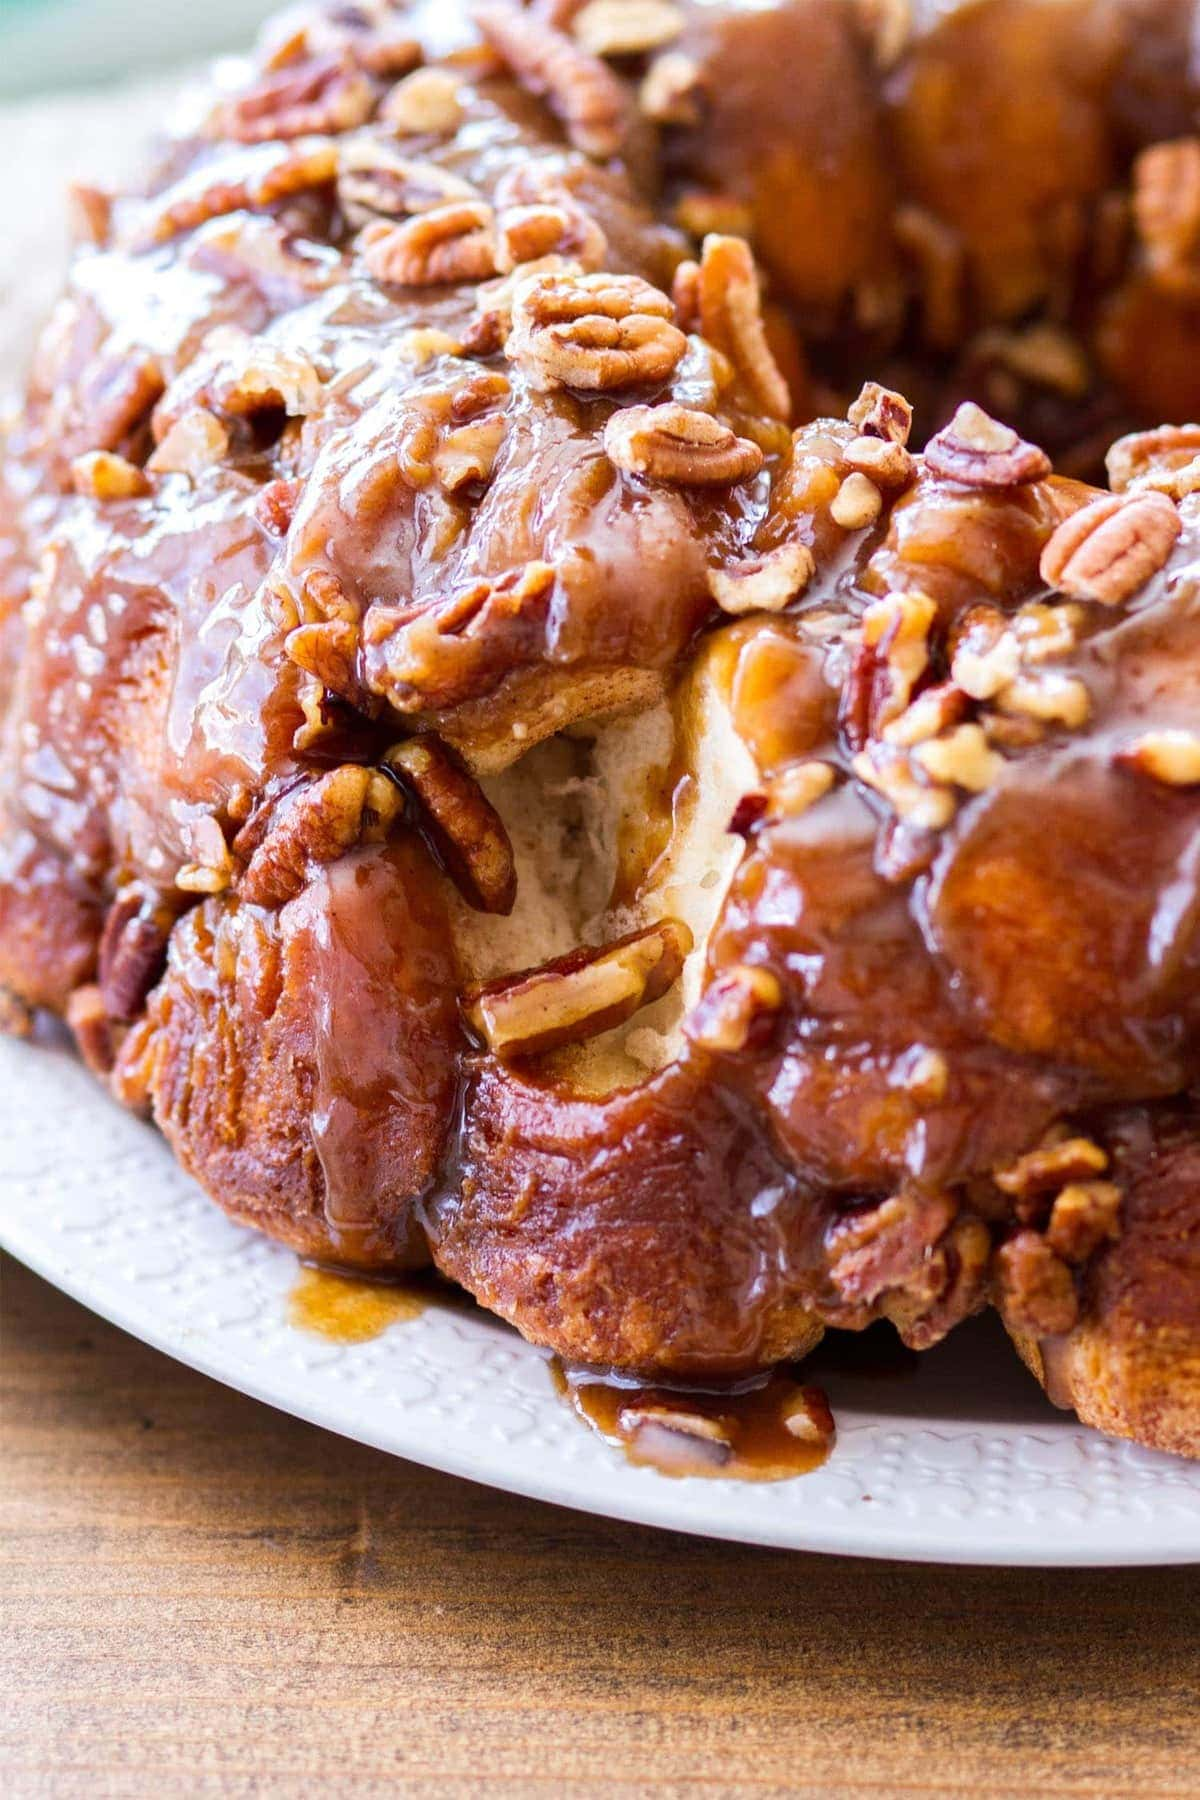 This easy maple pecan monkey bread is perfect for fall! Pre-made biscuit dough is rolled in cinnamon sugar, then baked in a maple pecan caramel sauce that is to die for! This homemade monkey bread recipe makes the best fall breakfast, or even Thanksgiving brunch!